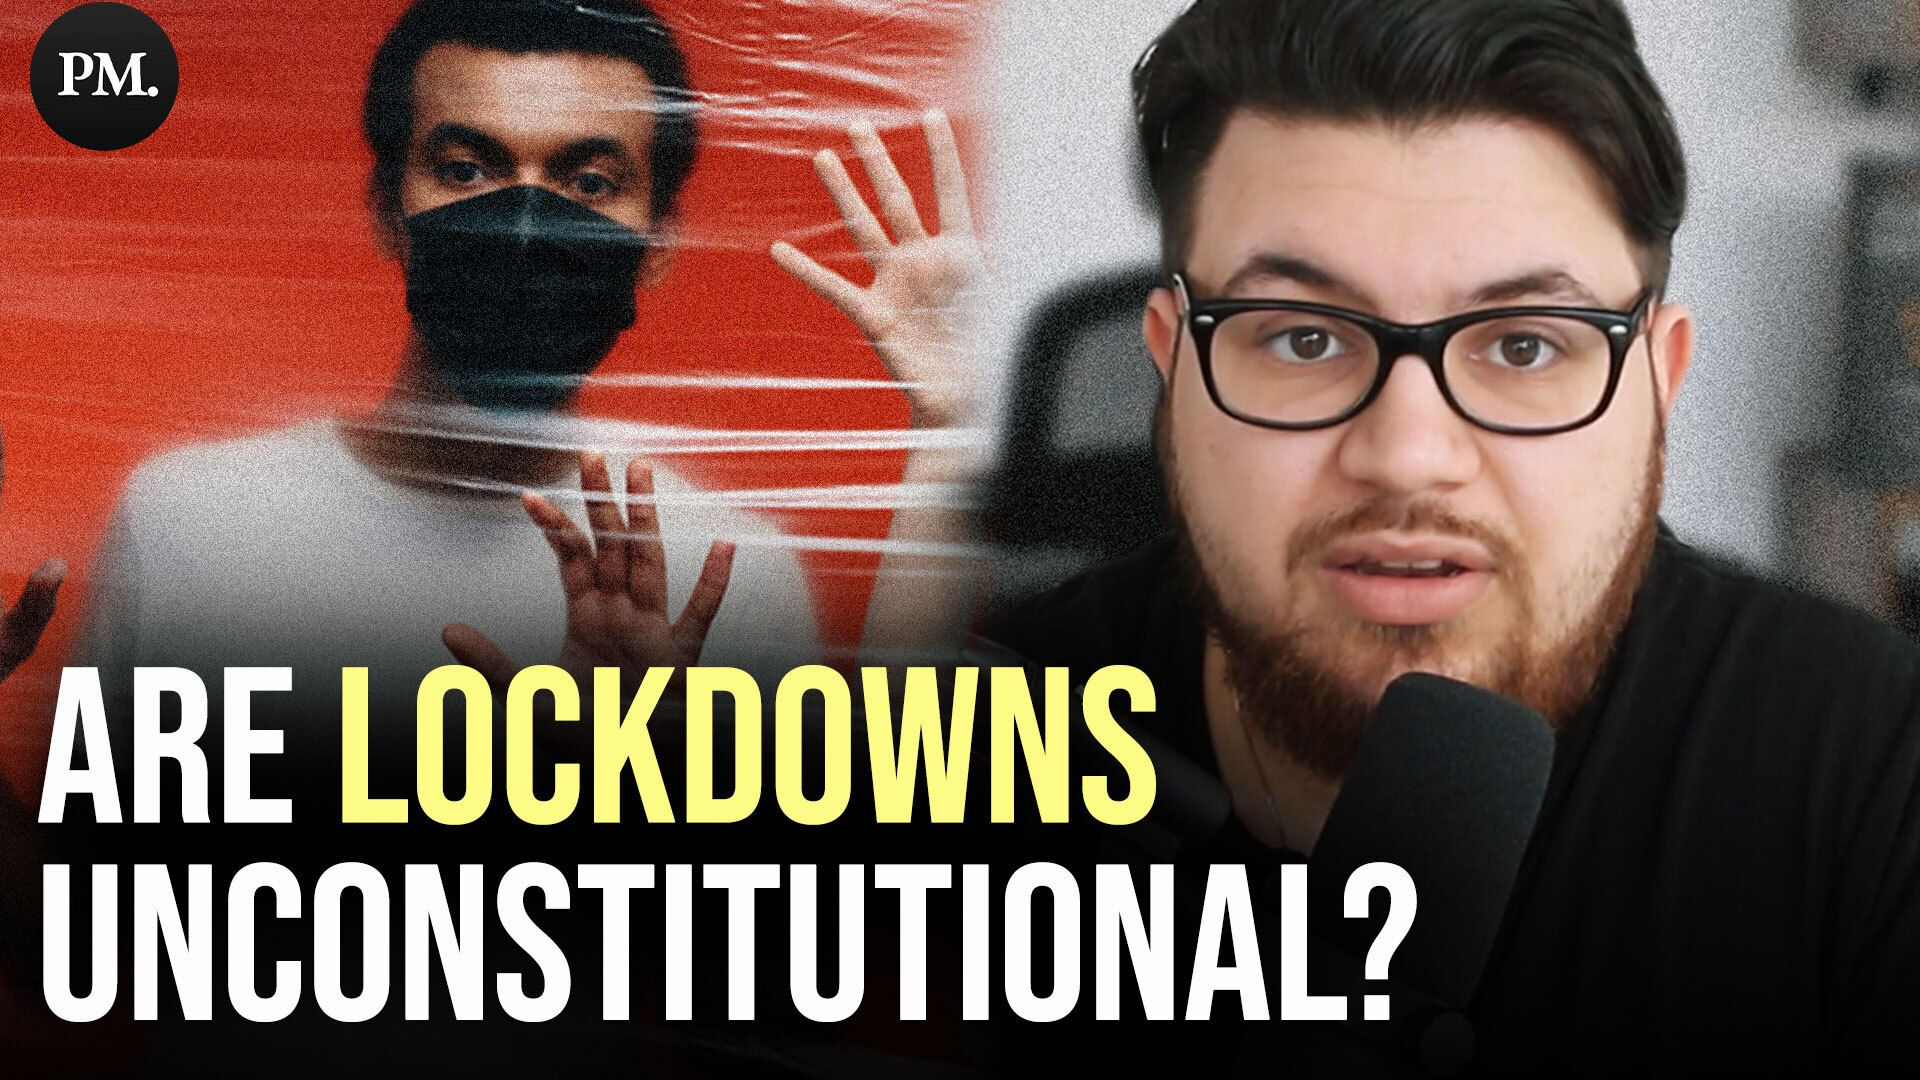 WATCH: Are Lockdowns Unconstitutional? - Cancel This Extra